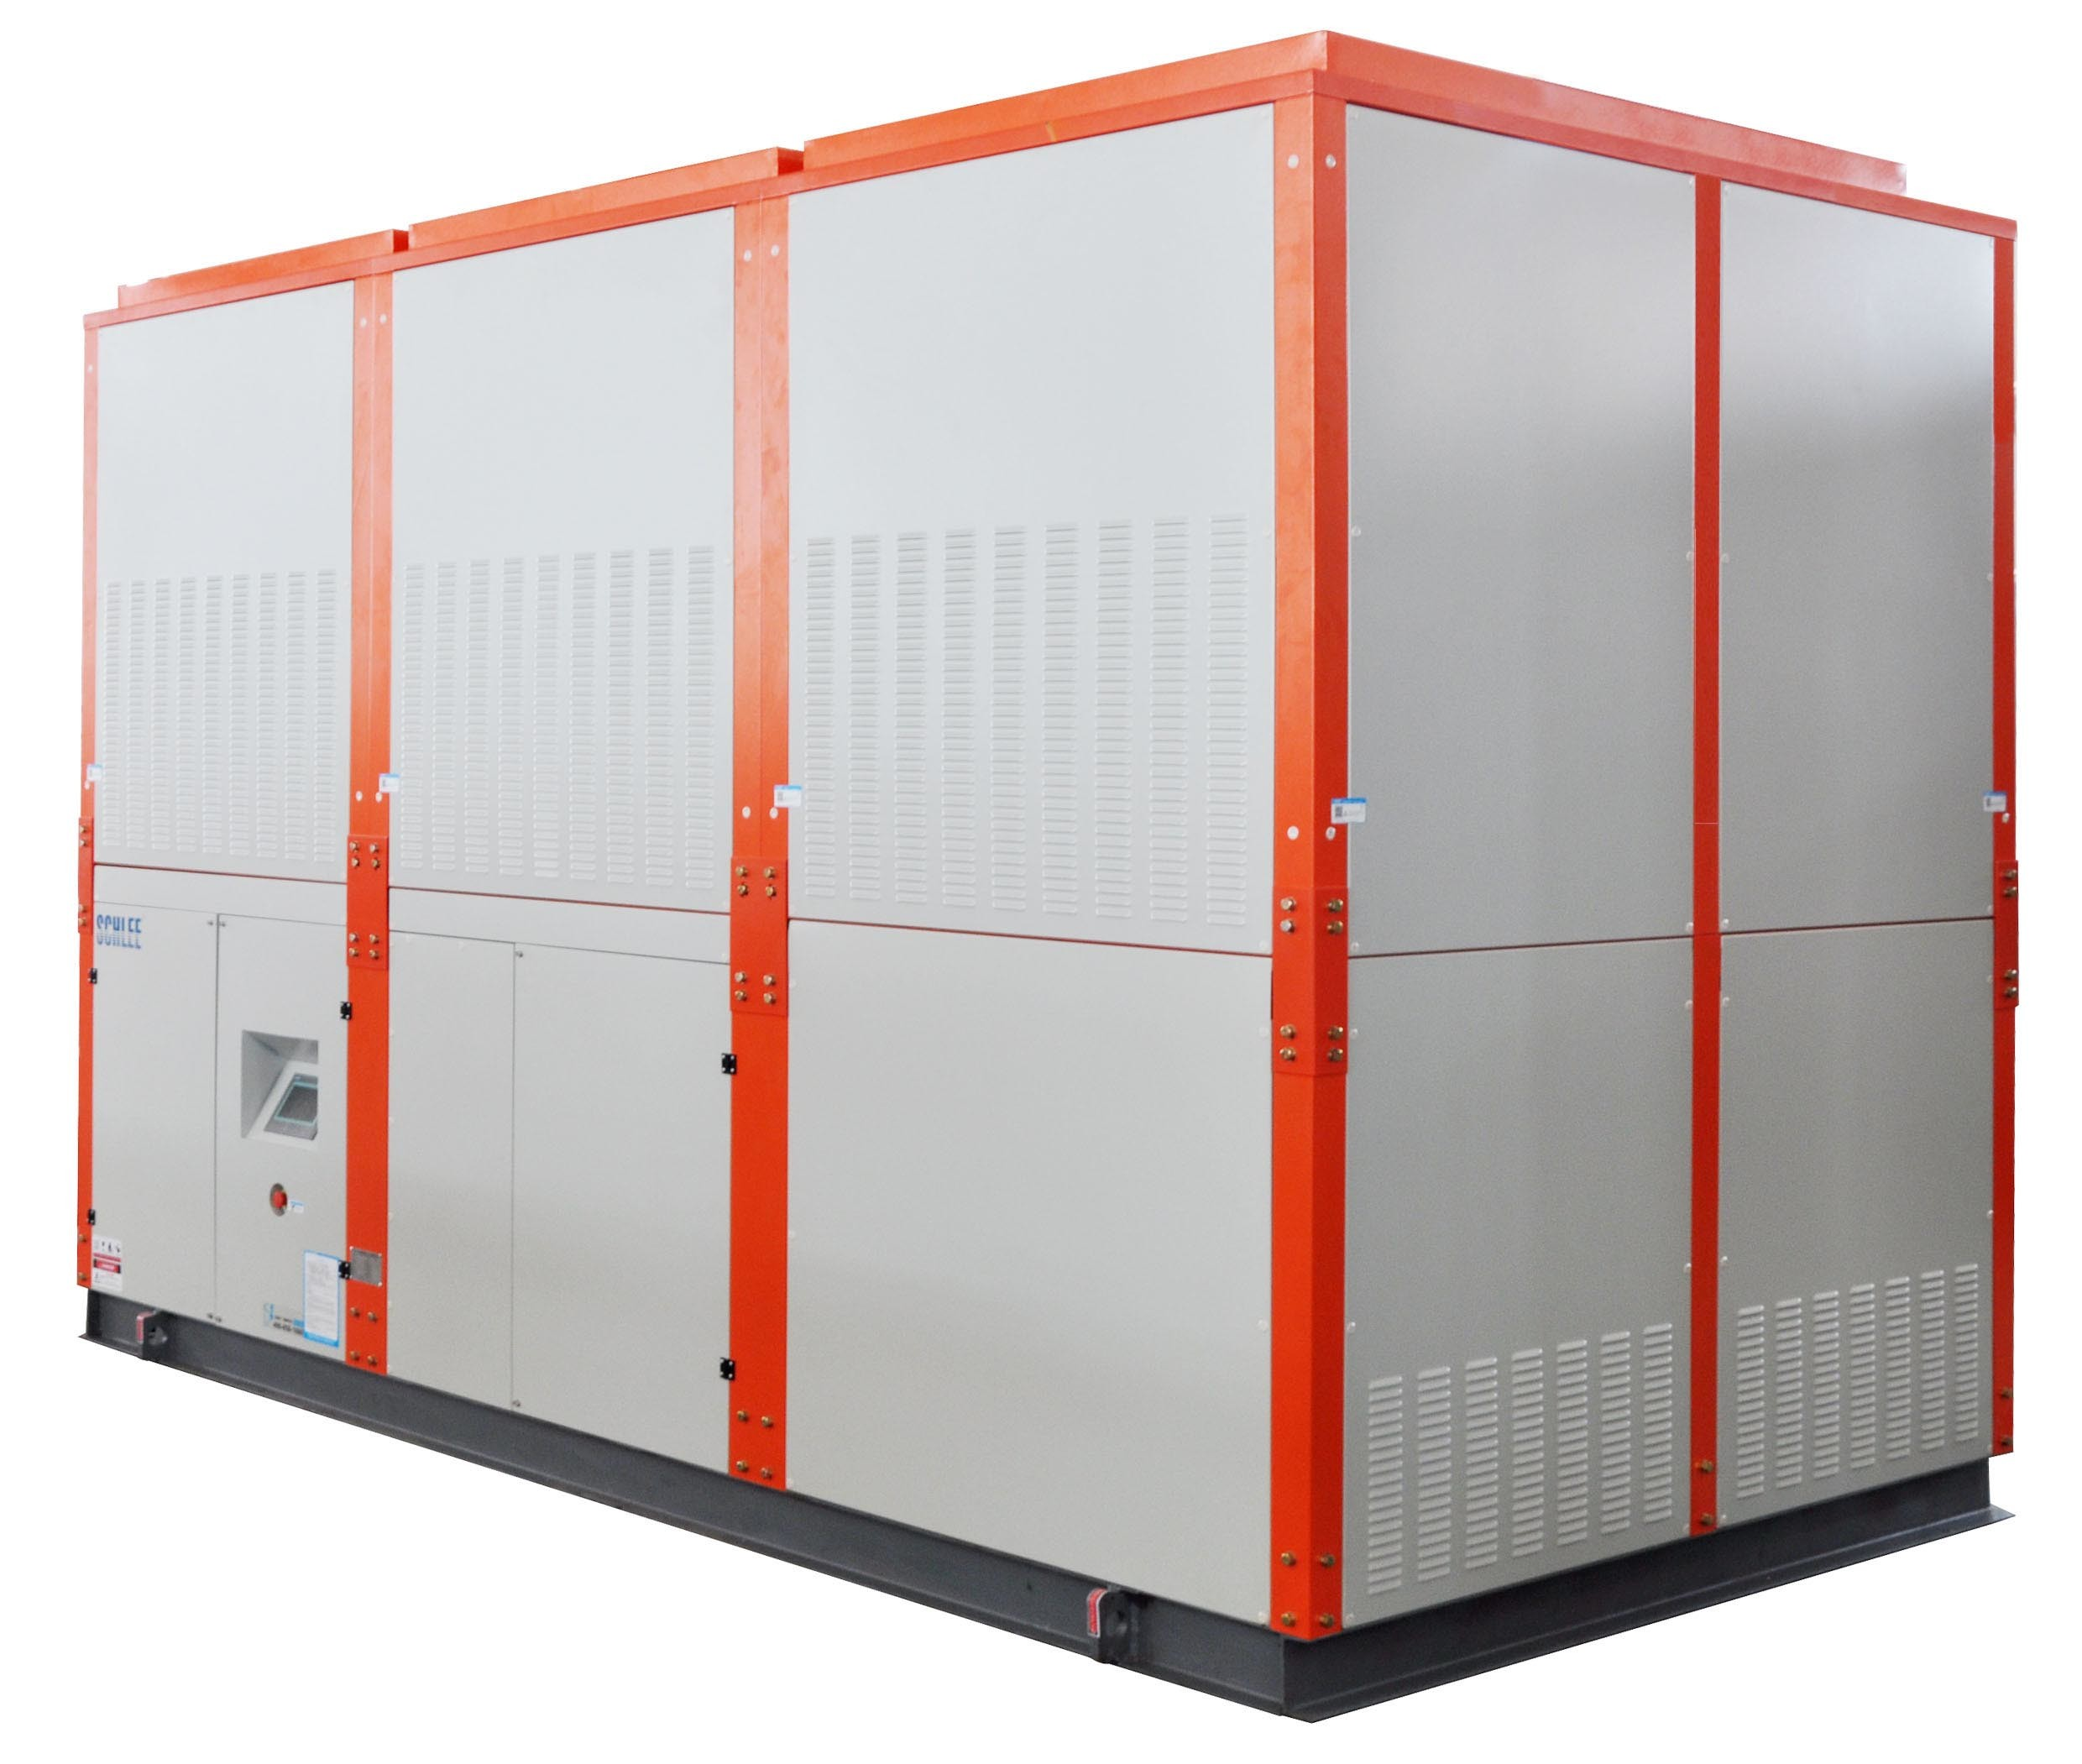 R22 M140zh4 Industrial Intergrated Evaporative Cooled Water Chiller System